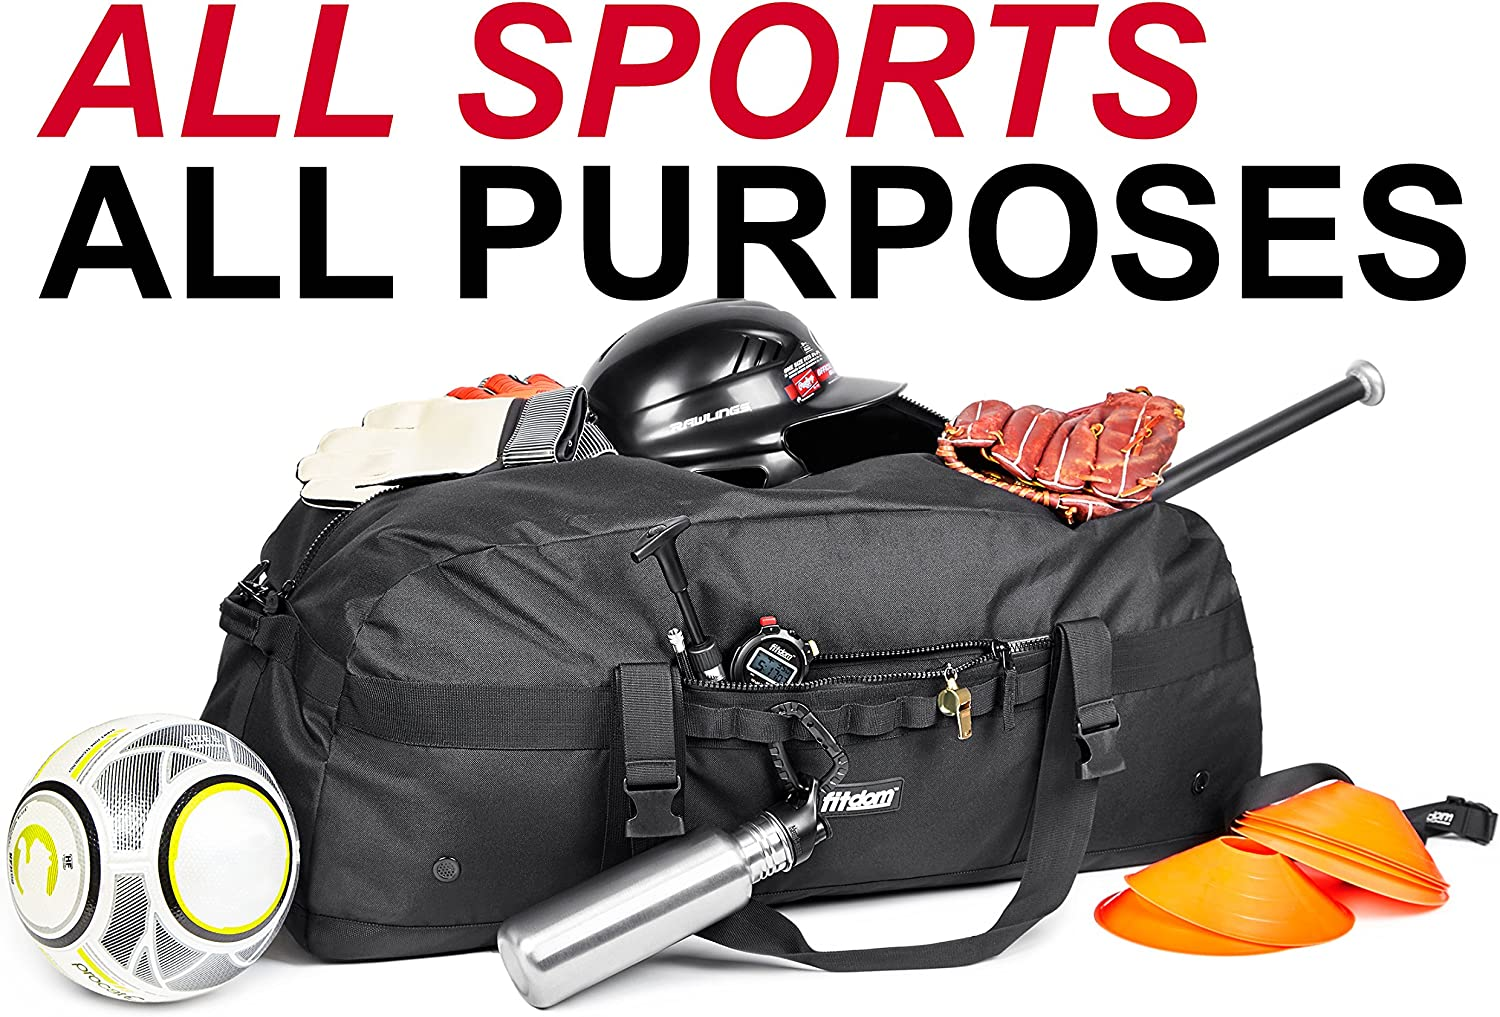 | Fitdom Heavy Duty Extra Large Sports Gym Equipment Travel Duffel Bag W/Adjustable Shoulder & Compression Straps. Perfect for Team Coaches & Best for Soccer Baseball Basketball Hockey Football & More | Sports Duffels